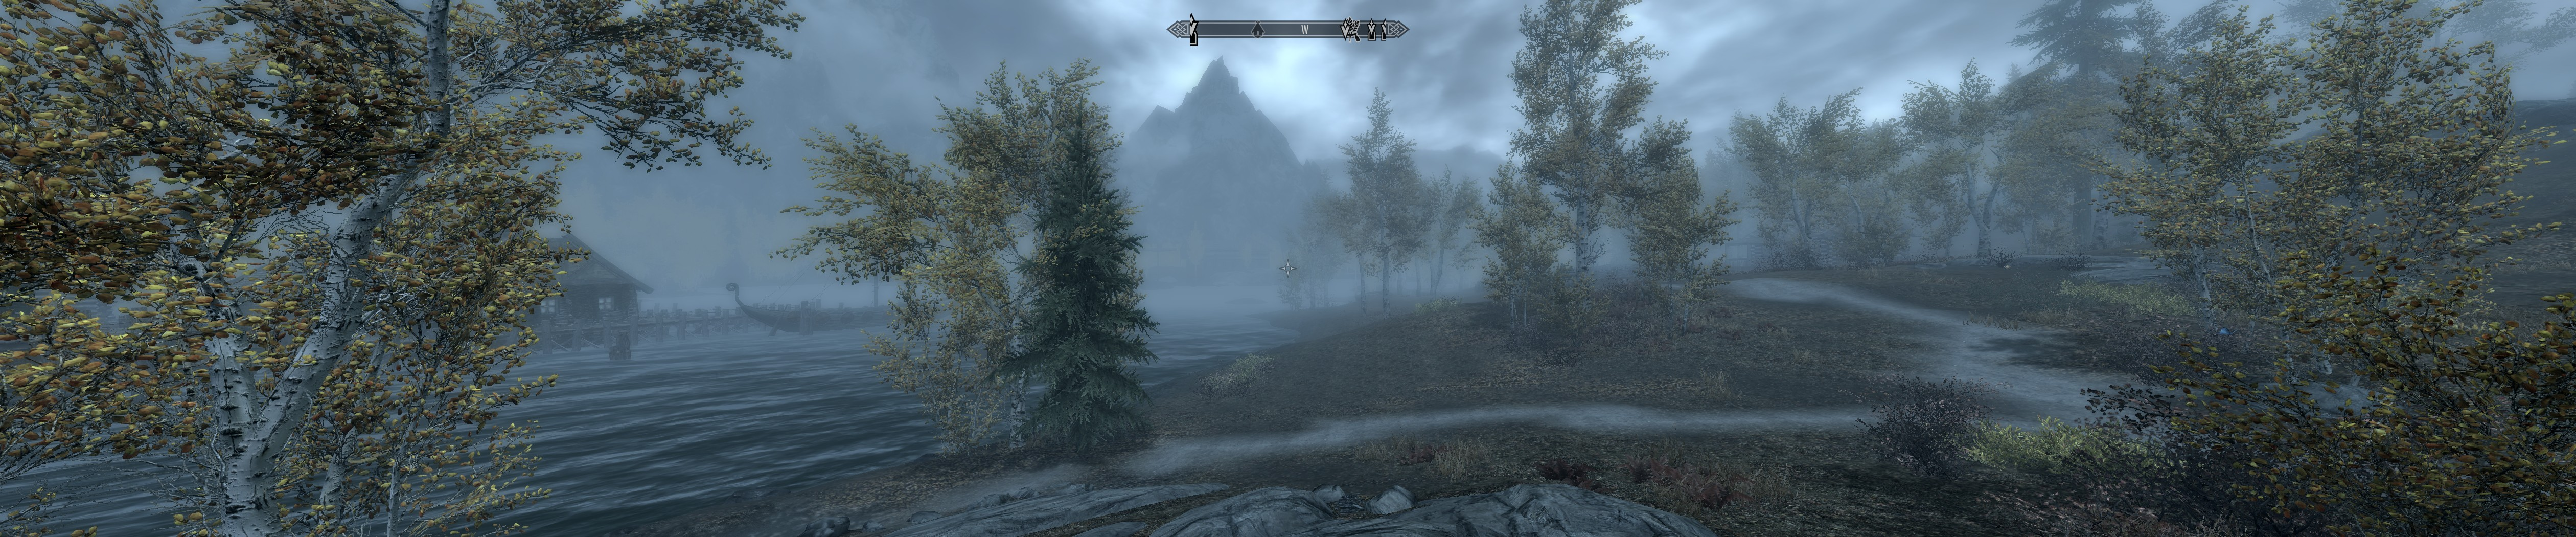 Skyrim Triple Monitors Eyefinity Surround 4k Video V